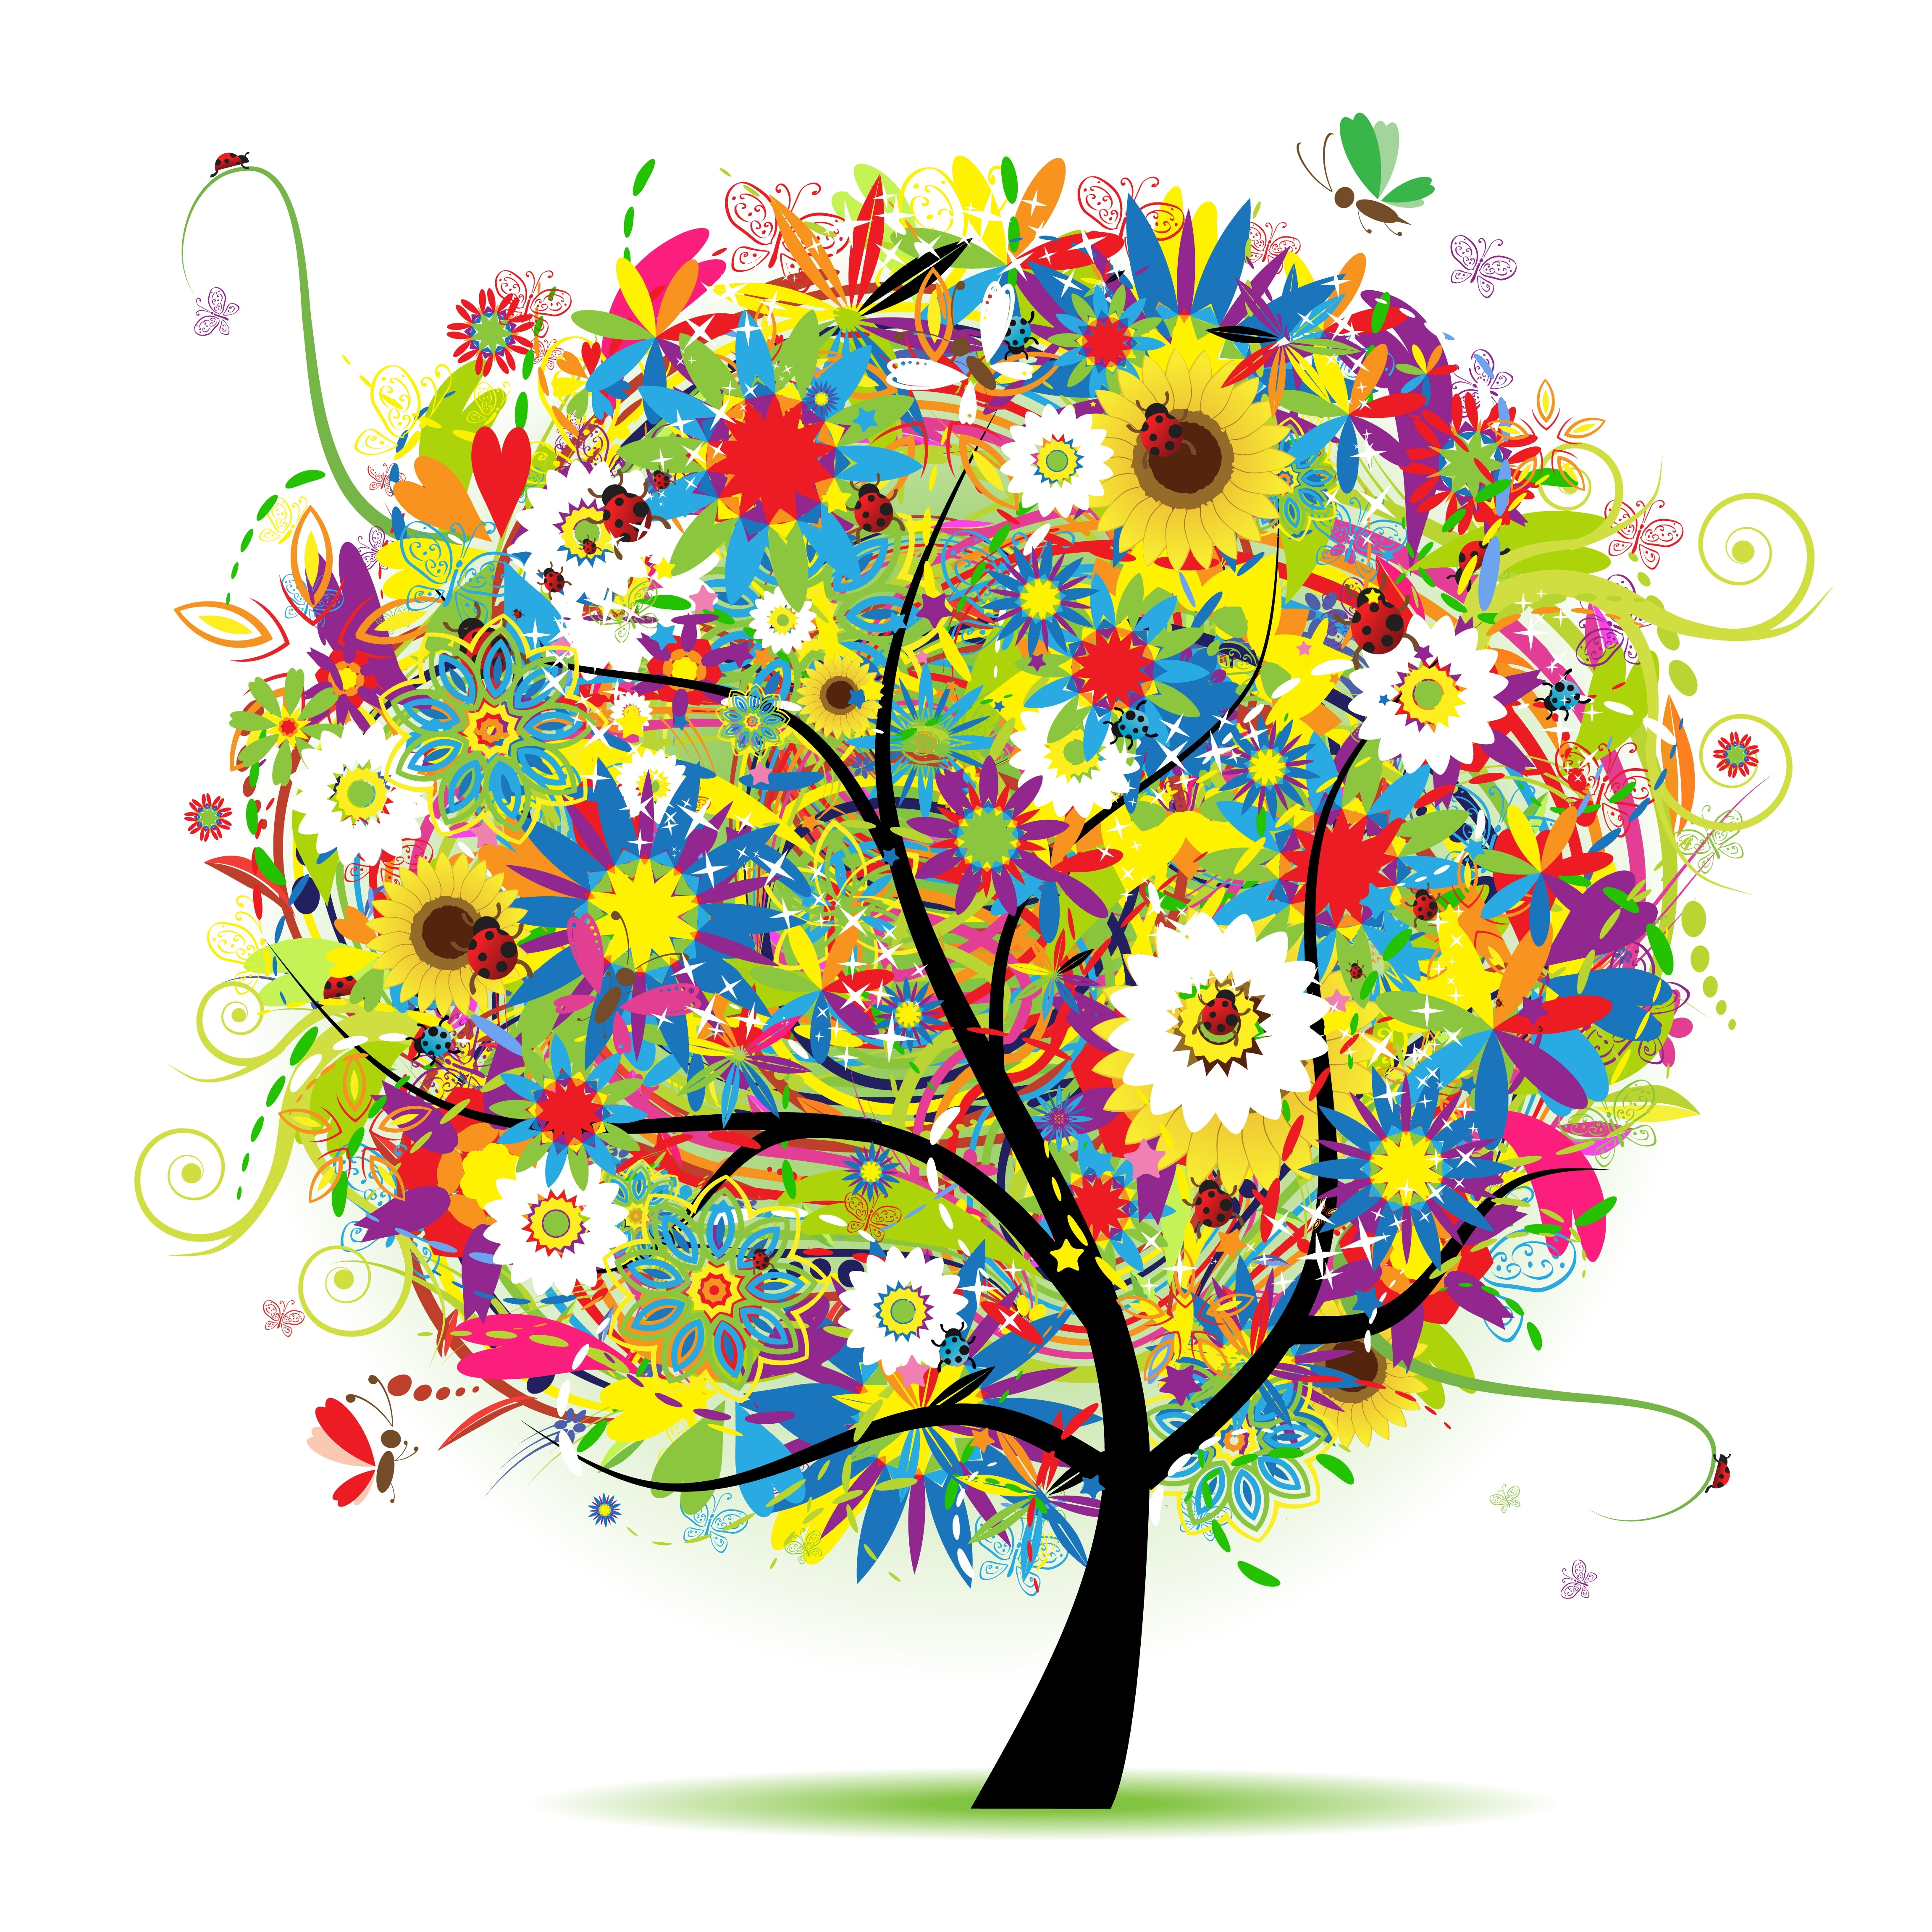 Graphic of tree filled with flowers and wildlife